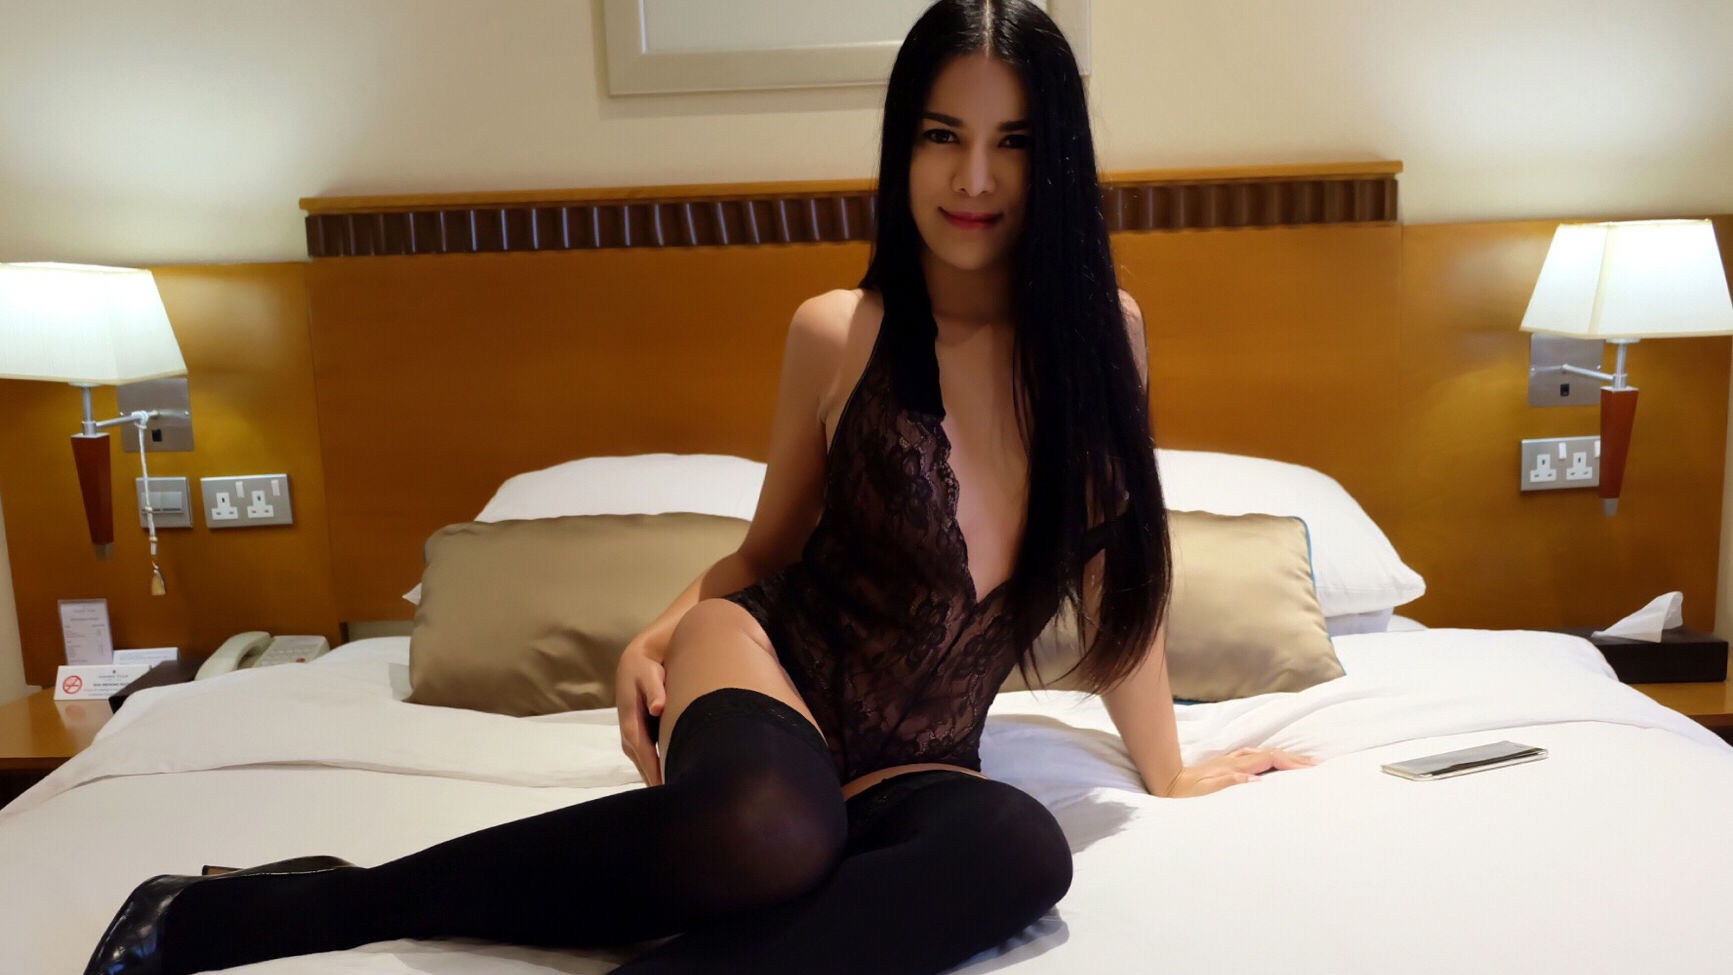 Independent Trans Escorts are More Desired Than Agencies